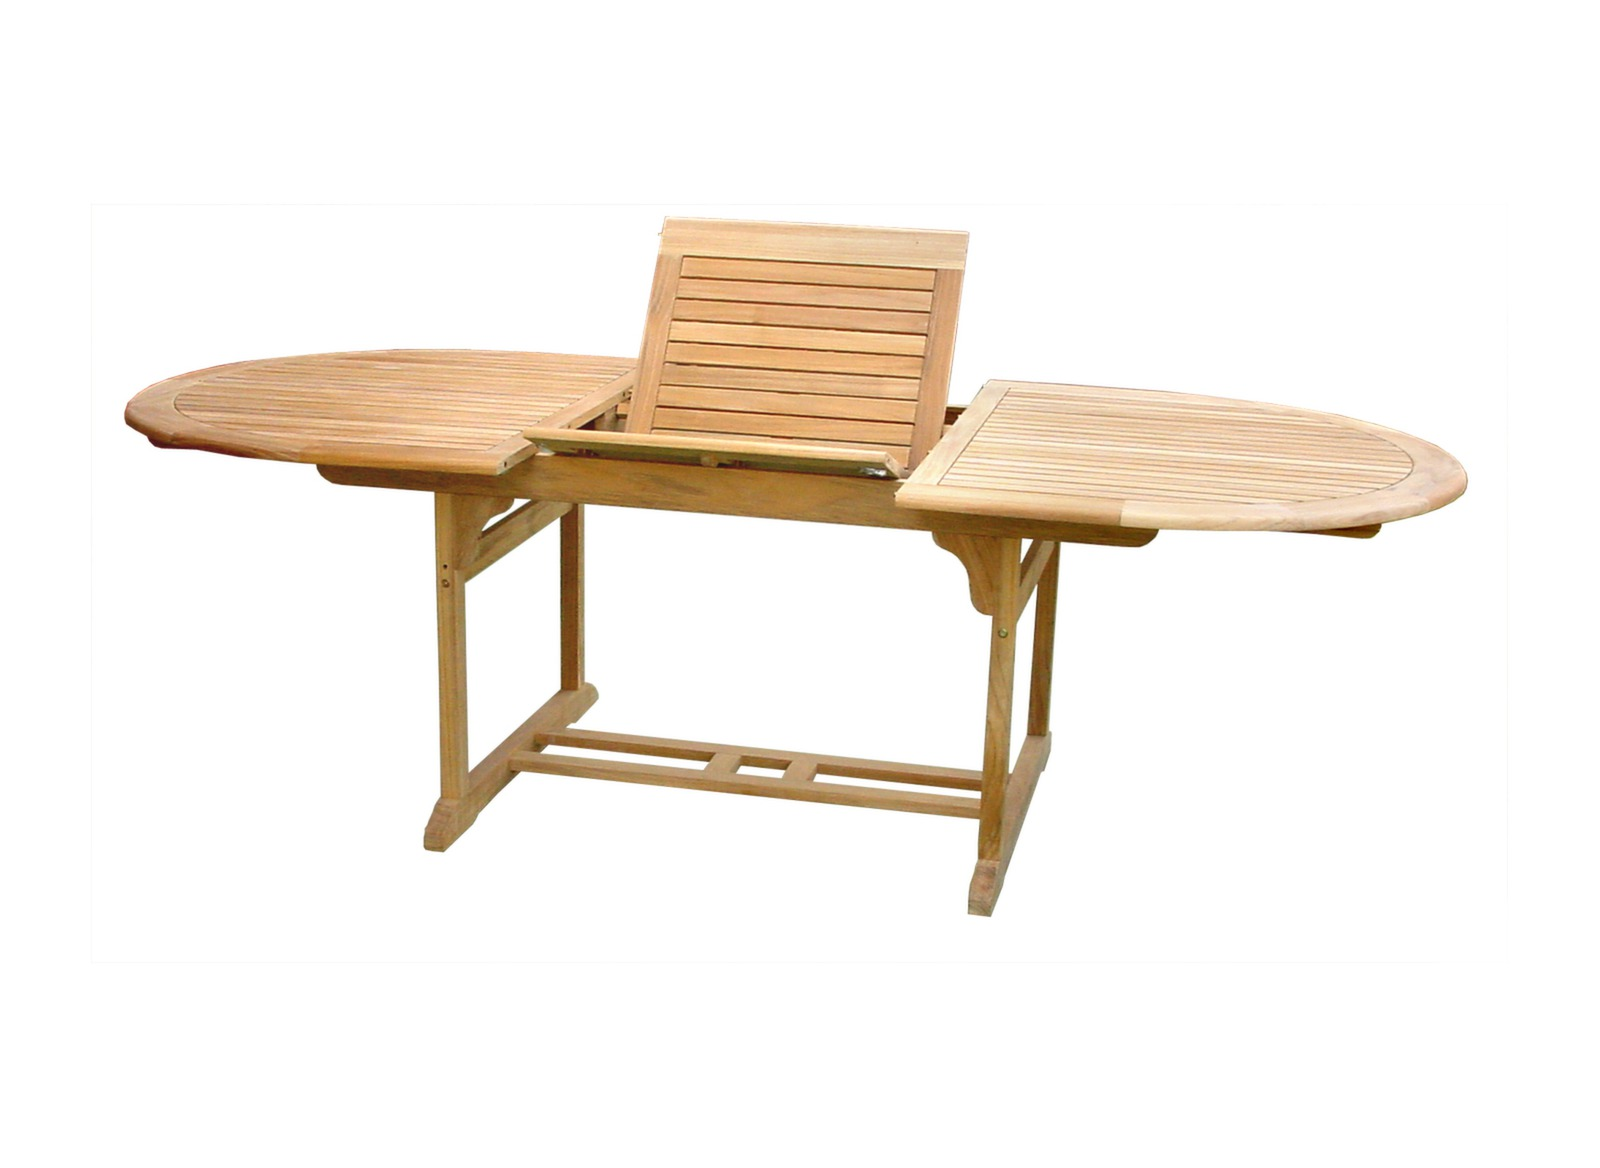 Table de jardin arrondie en teck hampton proloisirs for Table jardin en teck